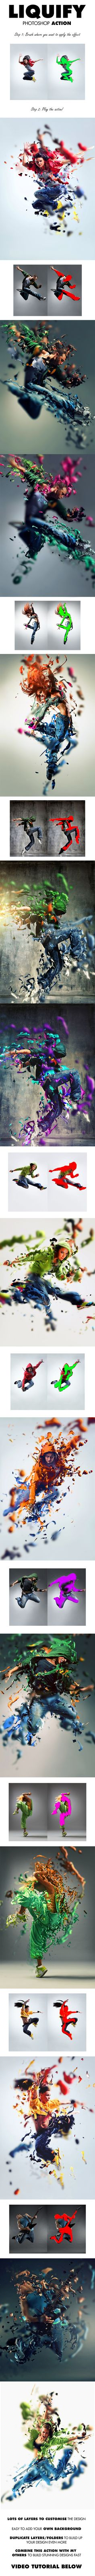 Liquify Photoshop Action - Photo Effects Actions